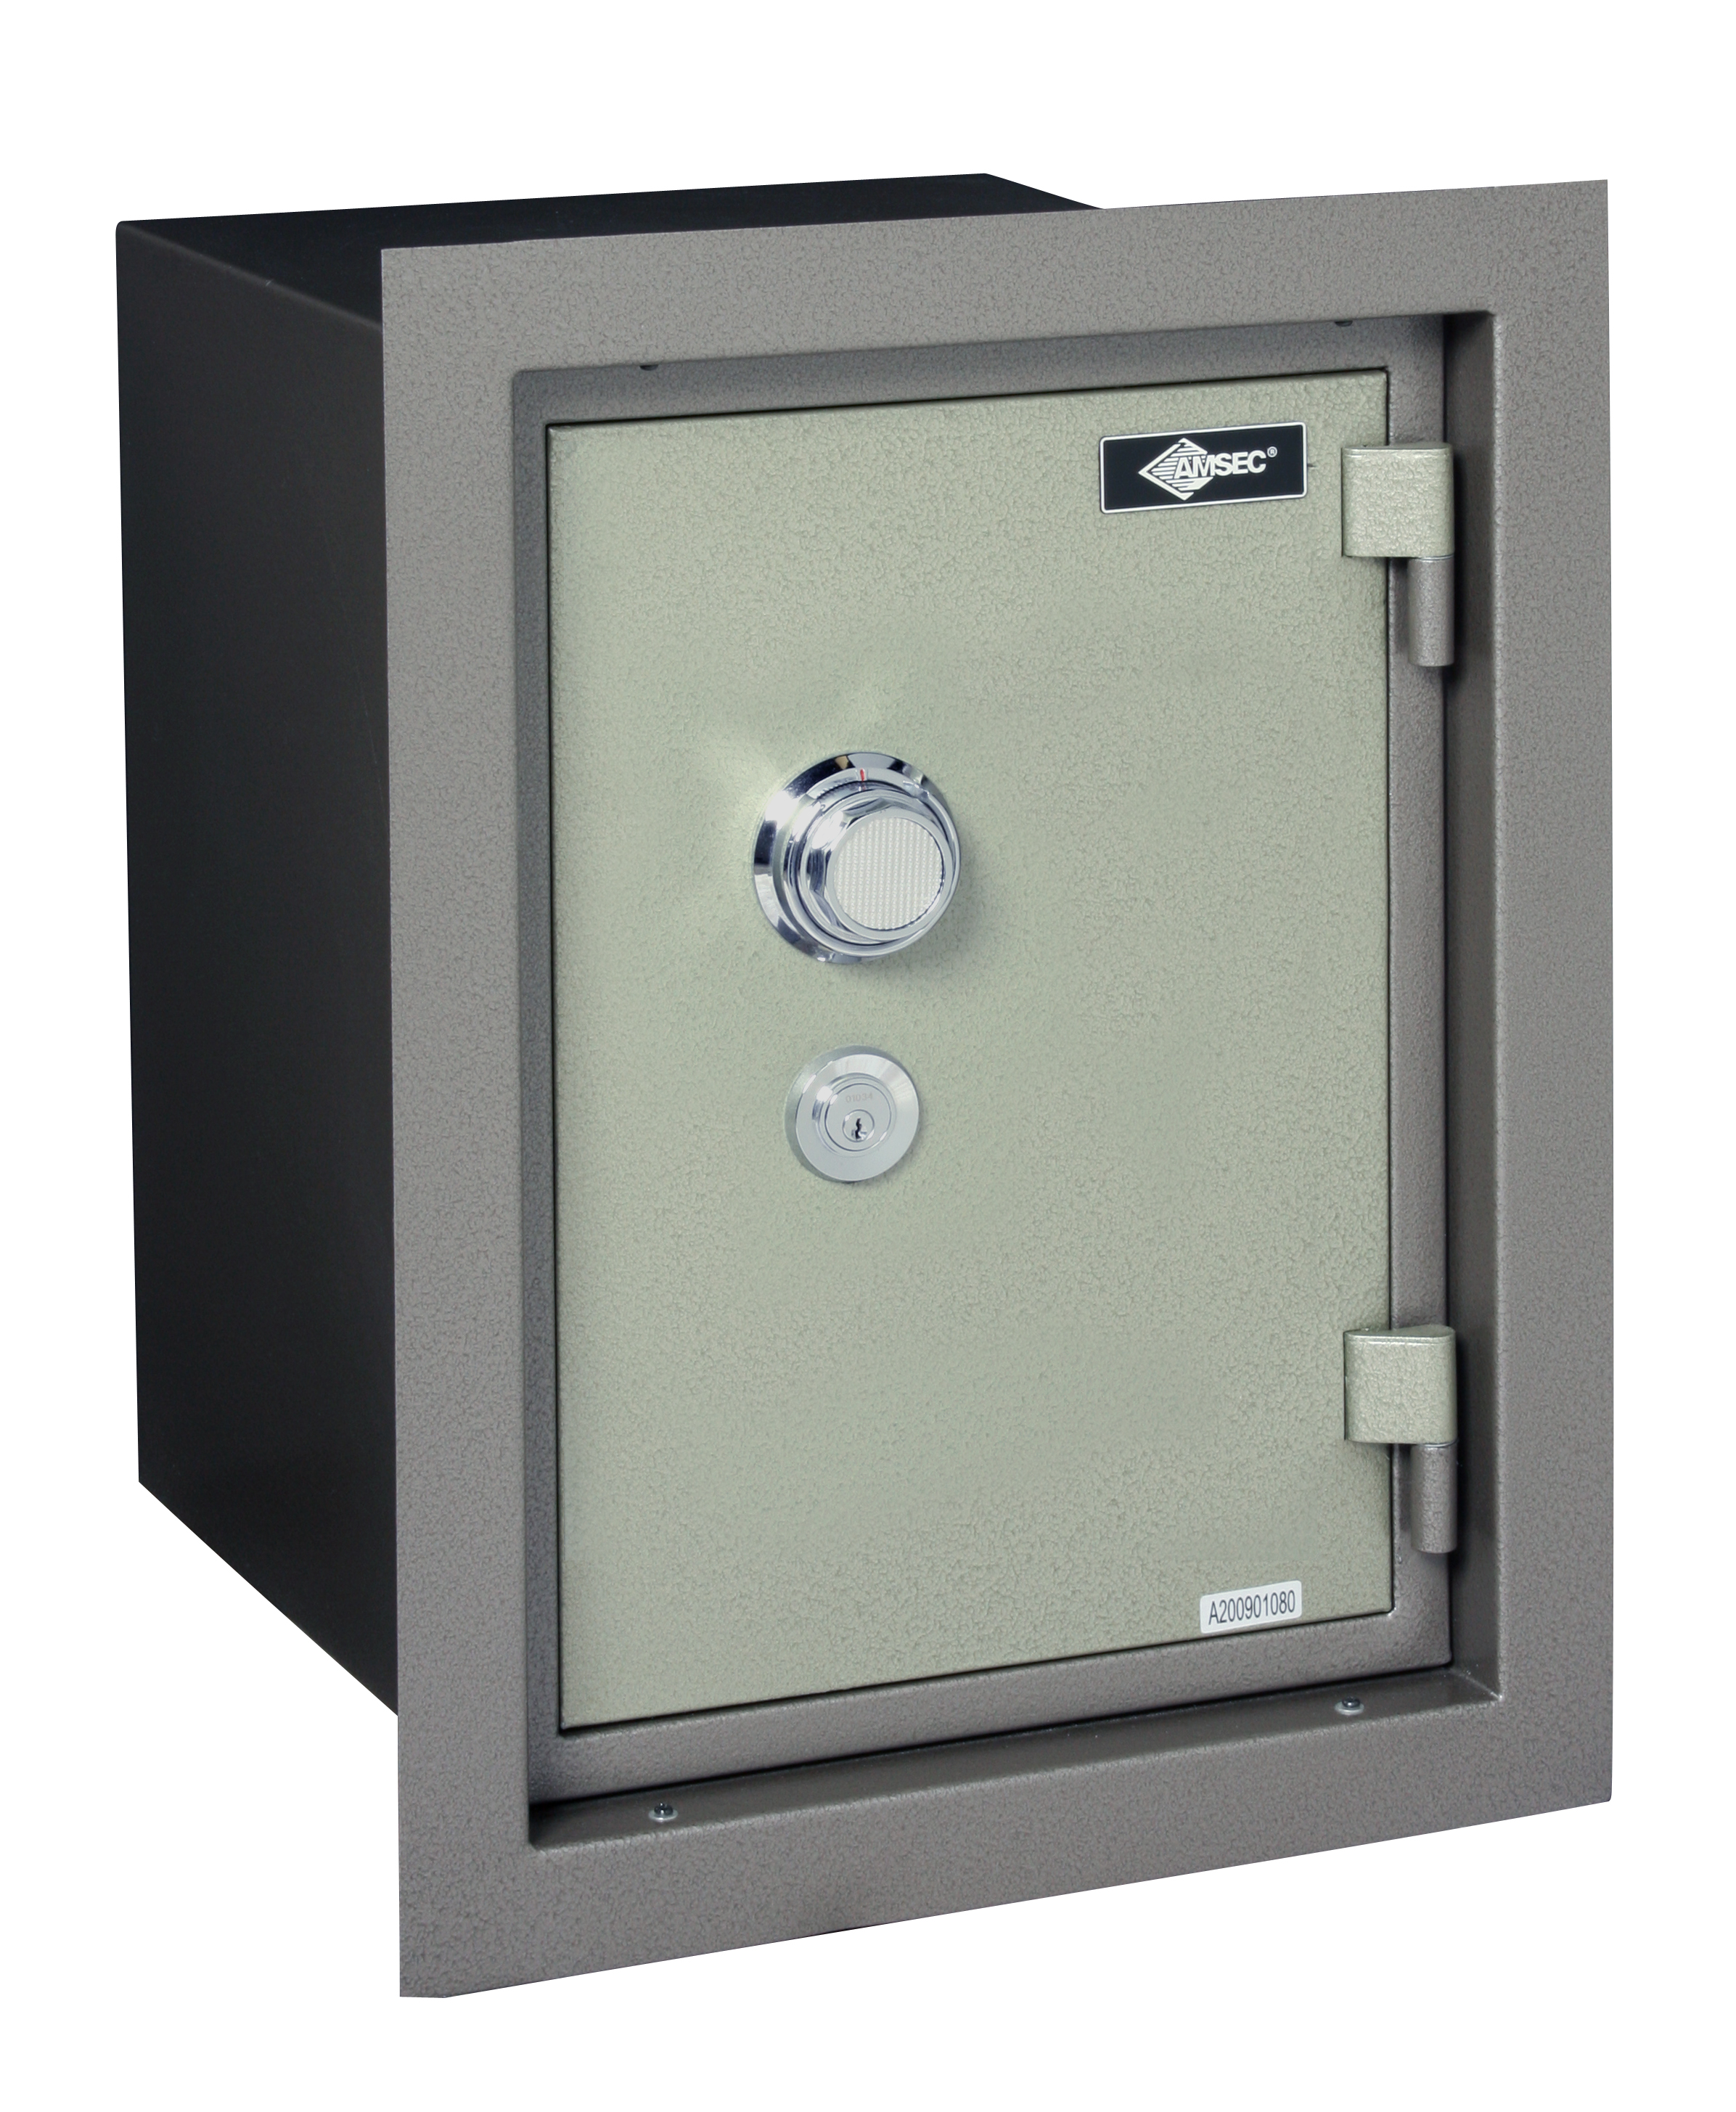 Fireproof Panels For Wood Stoves : Wfs e lp steel in wall safe